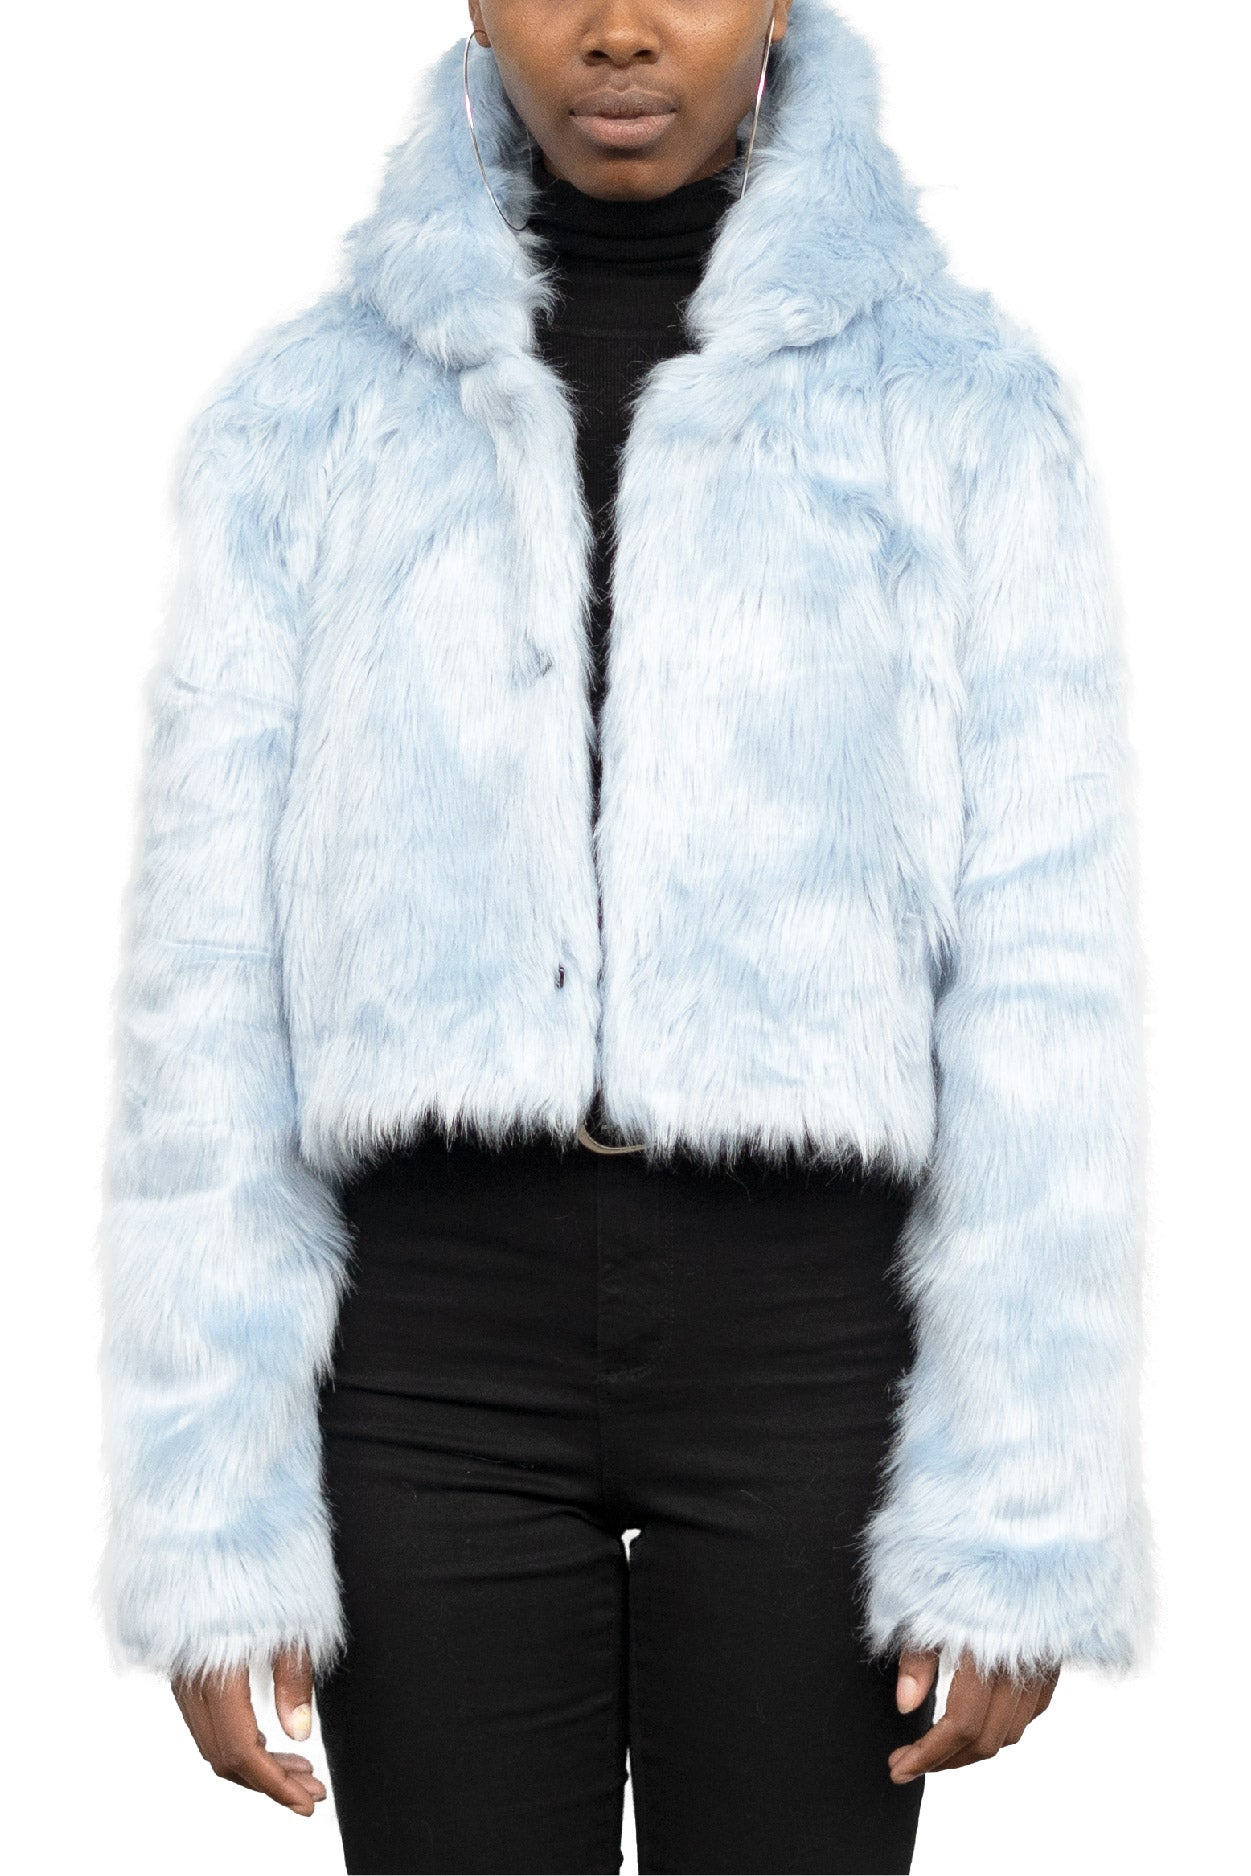 PASTEL BLUE HOODED FAUX FUR JACKET